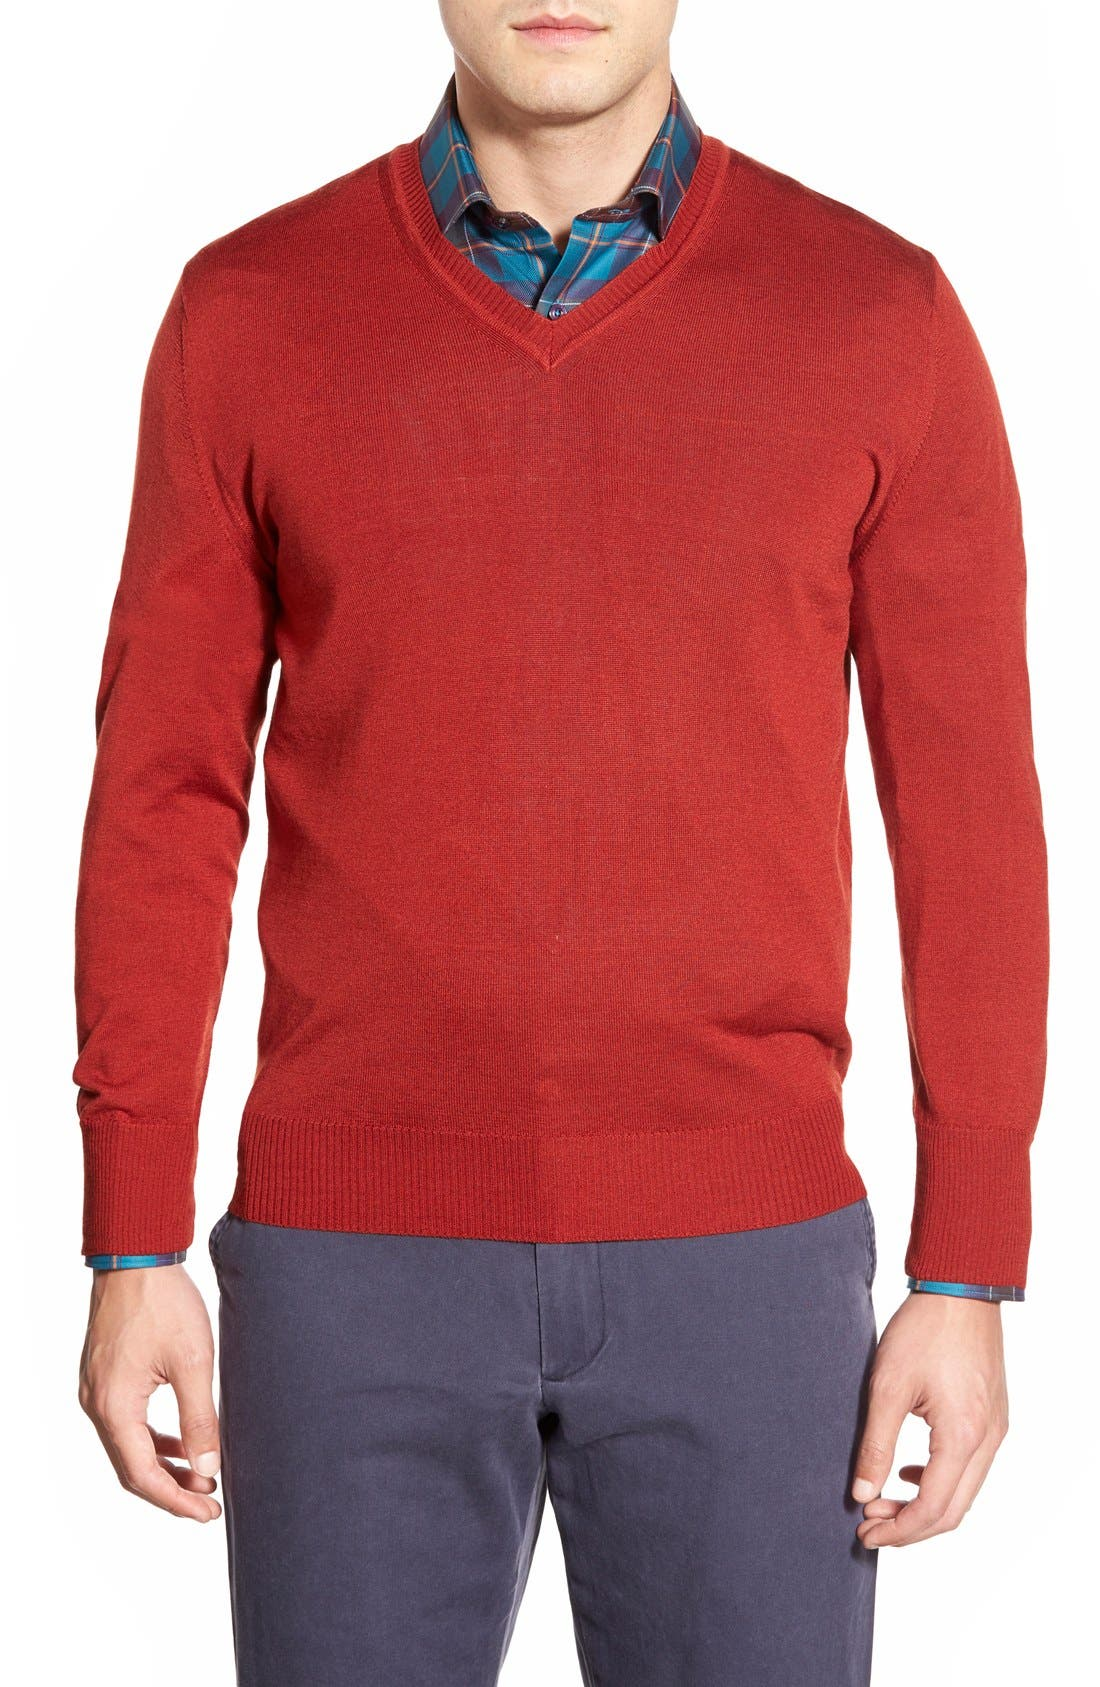 Robert Talbott 'Pasadera' Wool & Silk Blend V-Neck Sweater